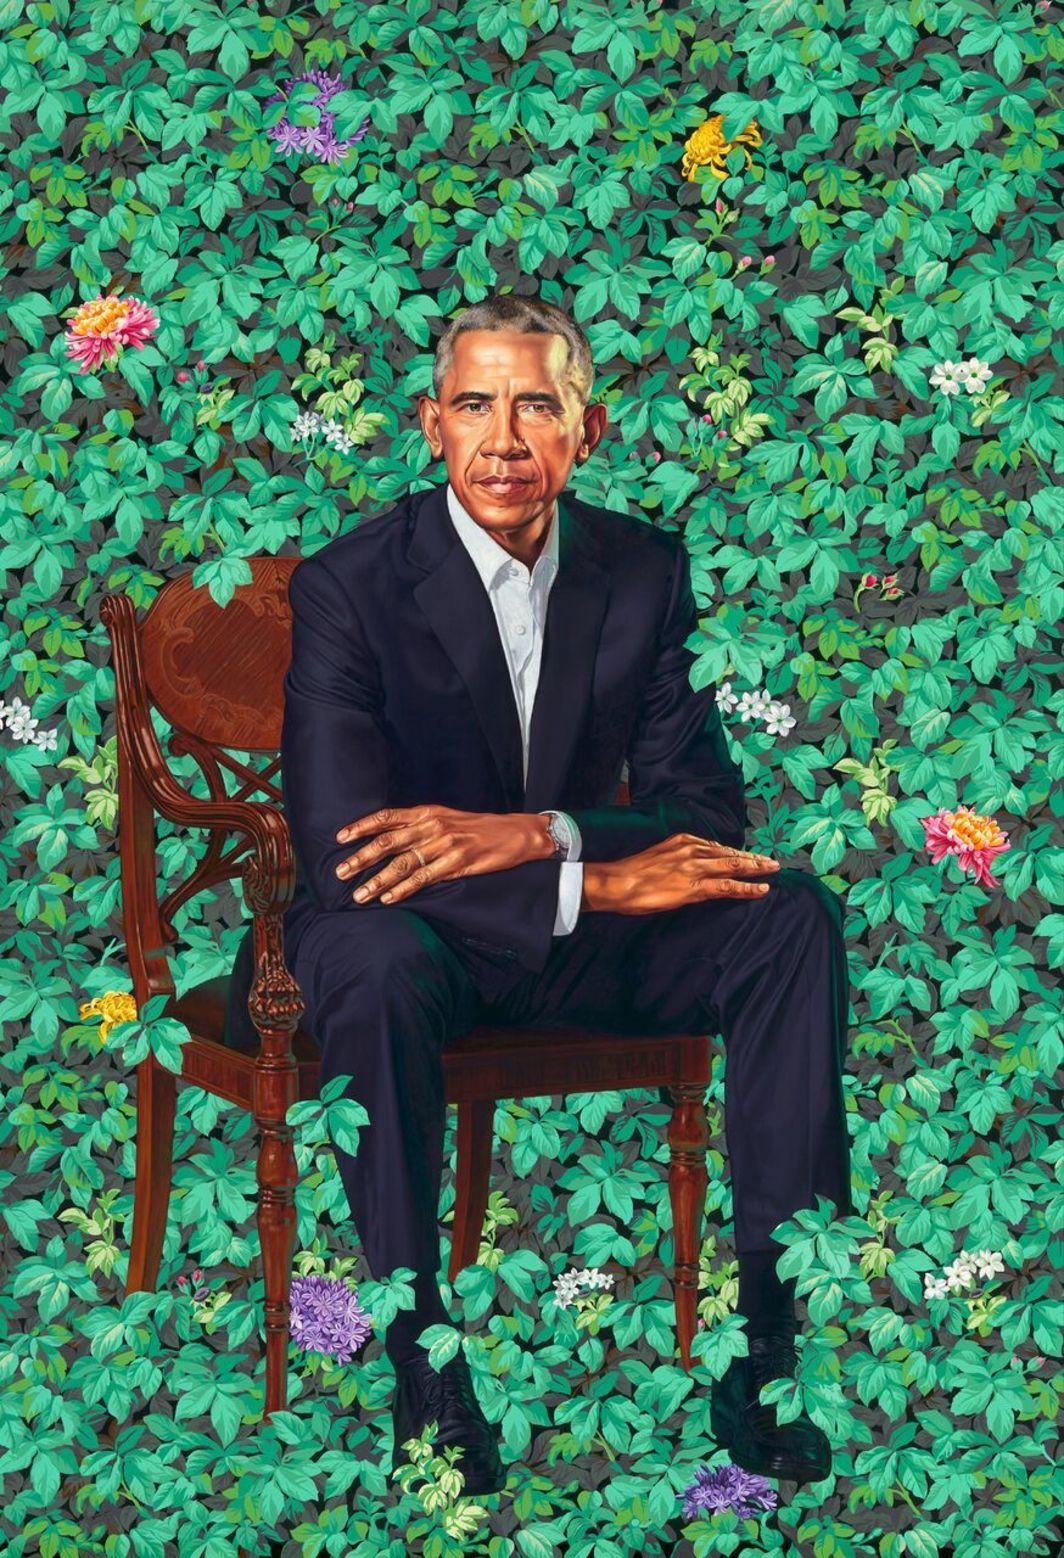 Portrait By: Kehinde Wiley